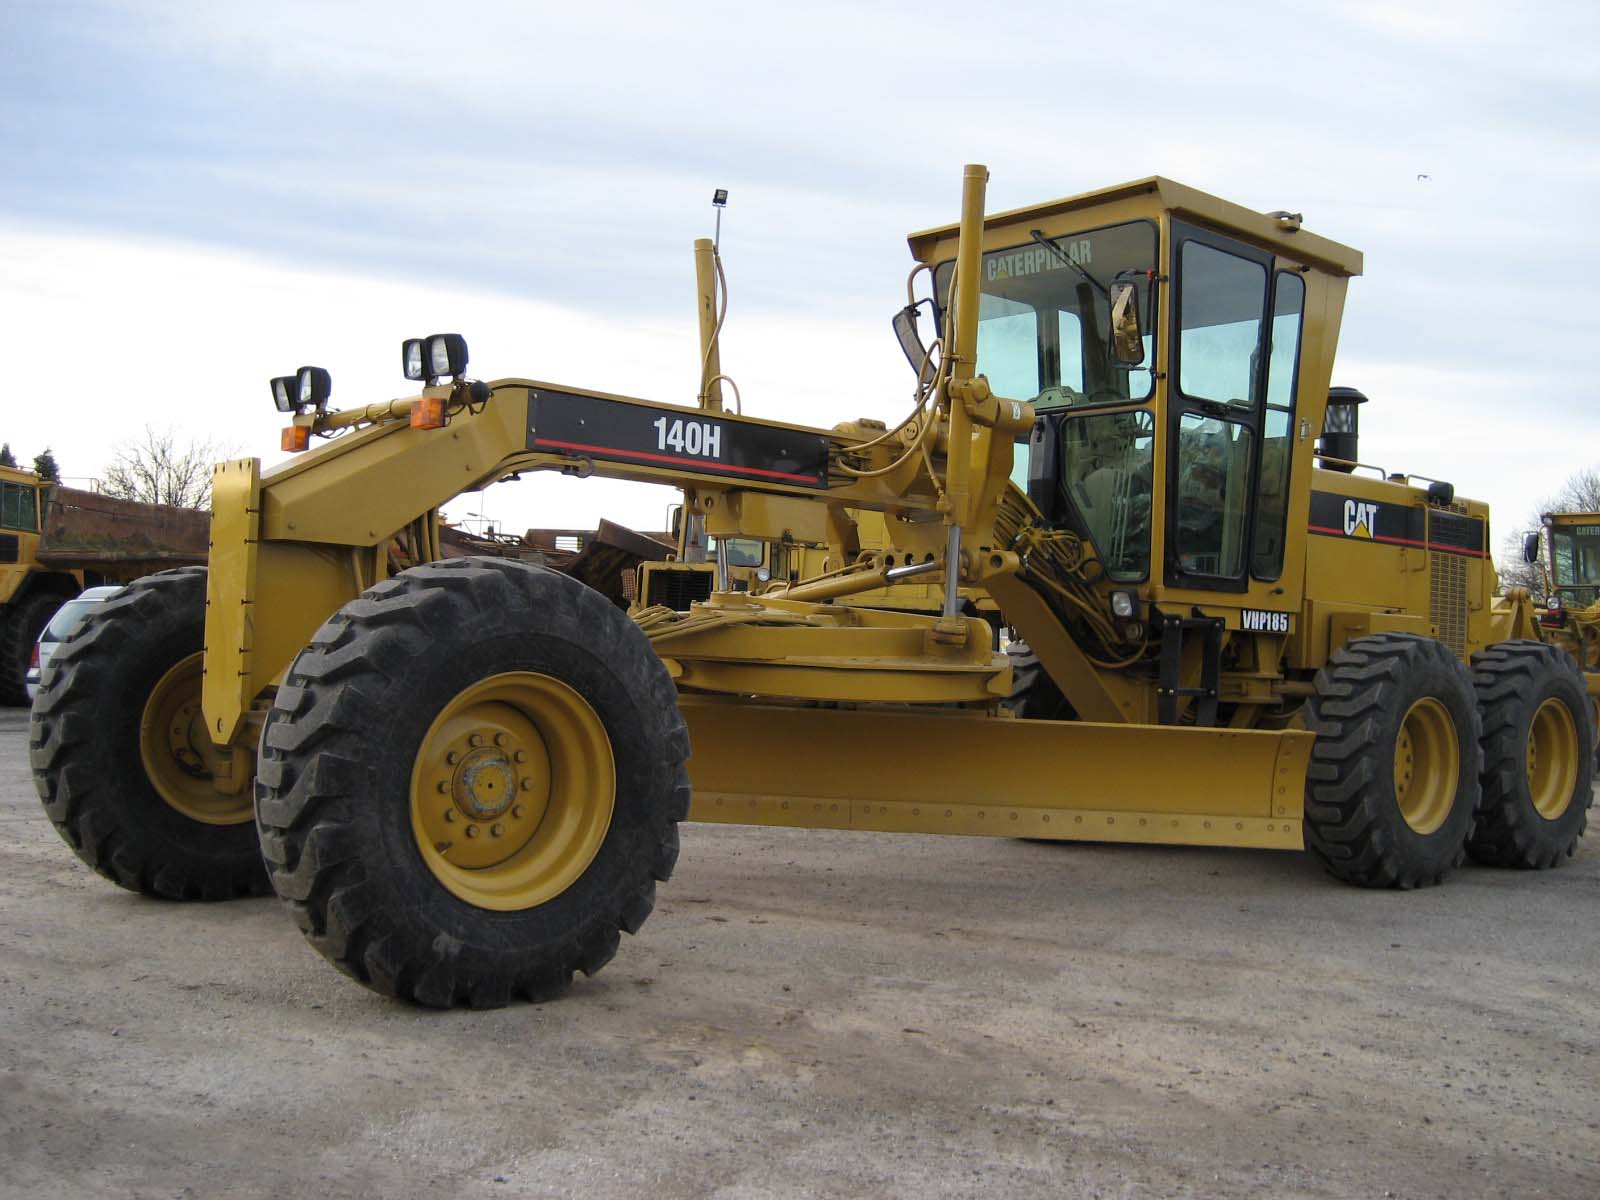 Caterpillar 325c photo - 4